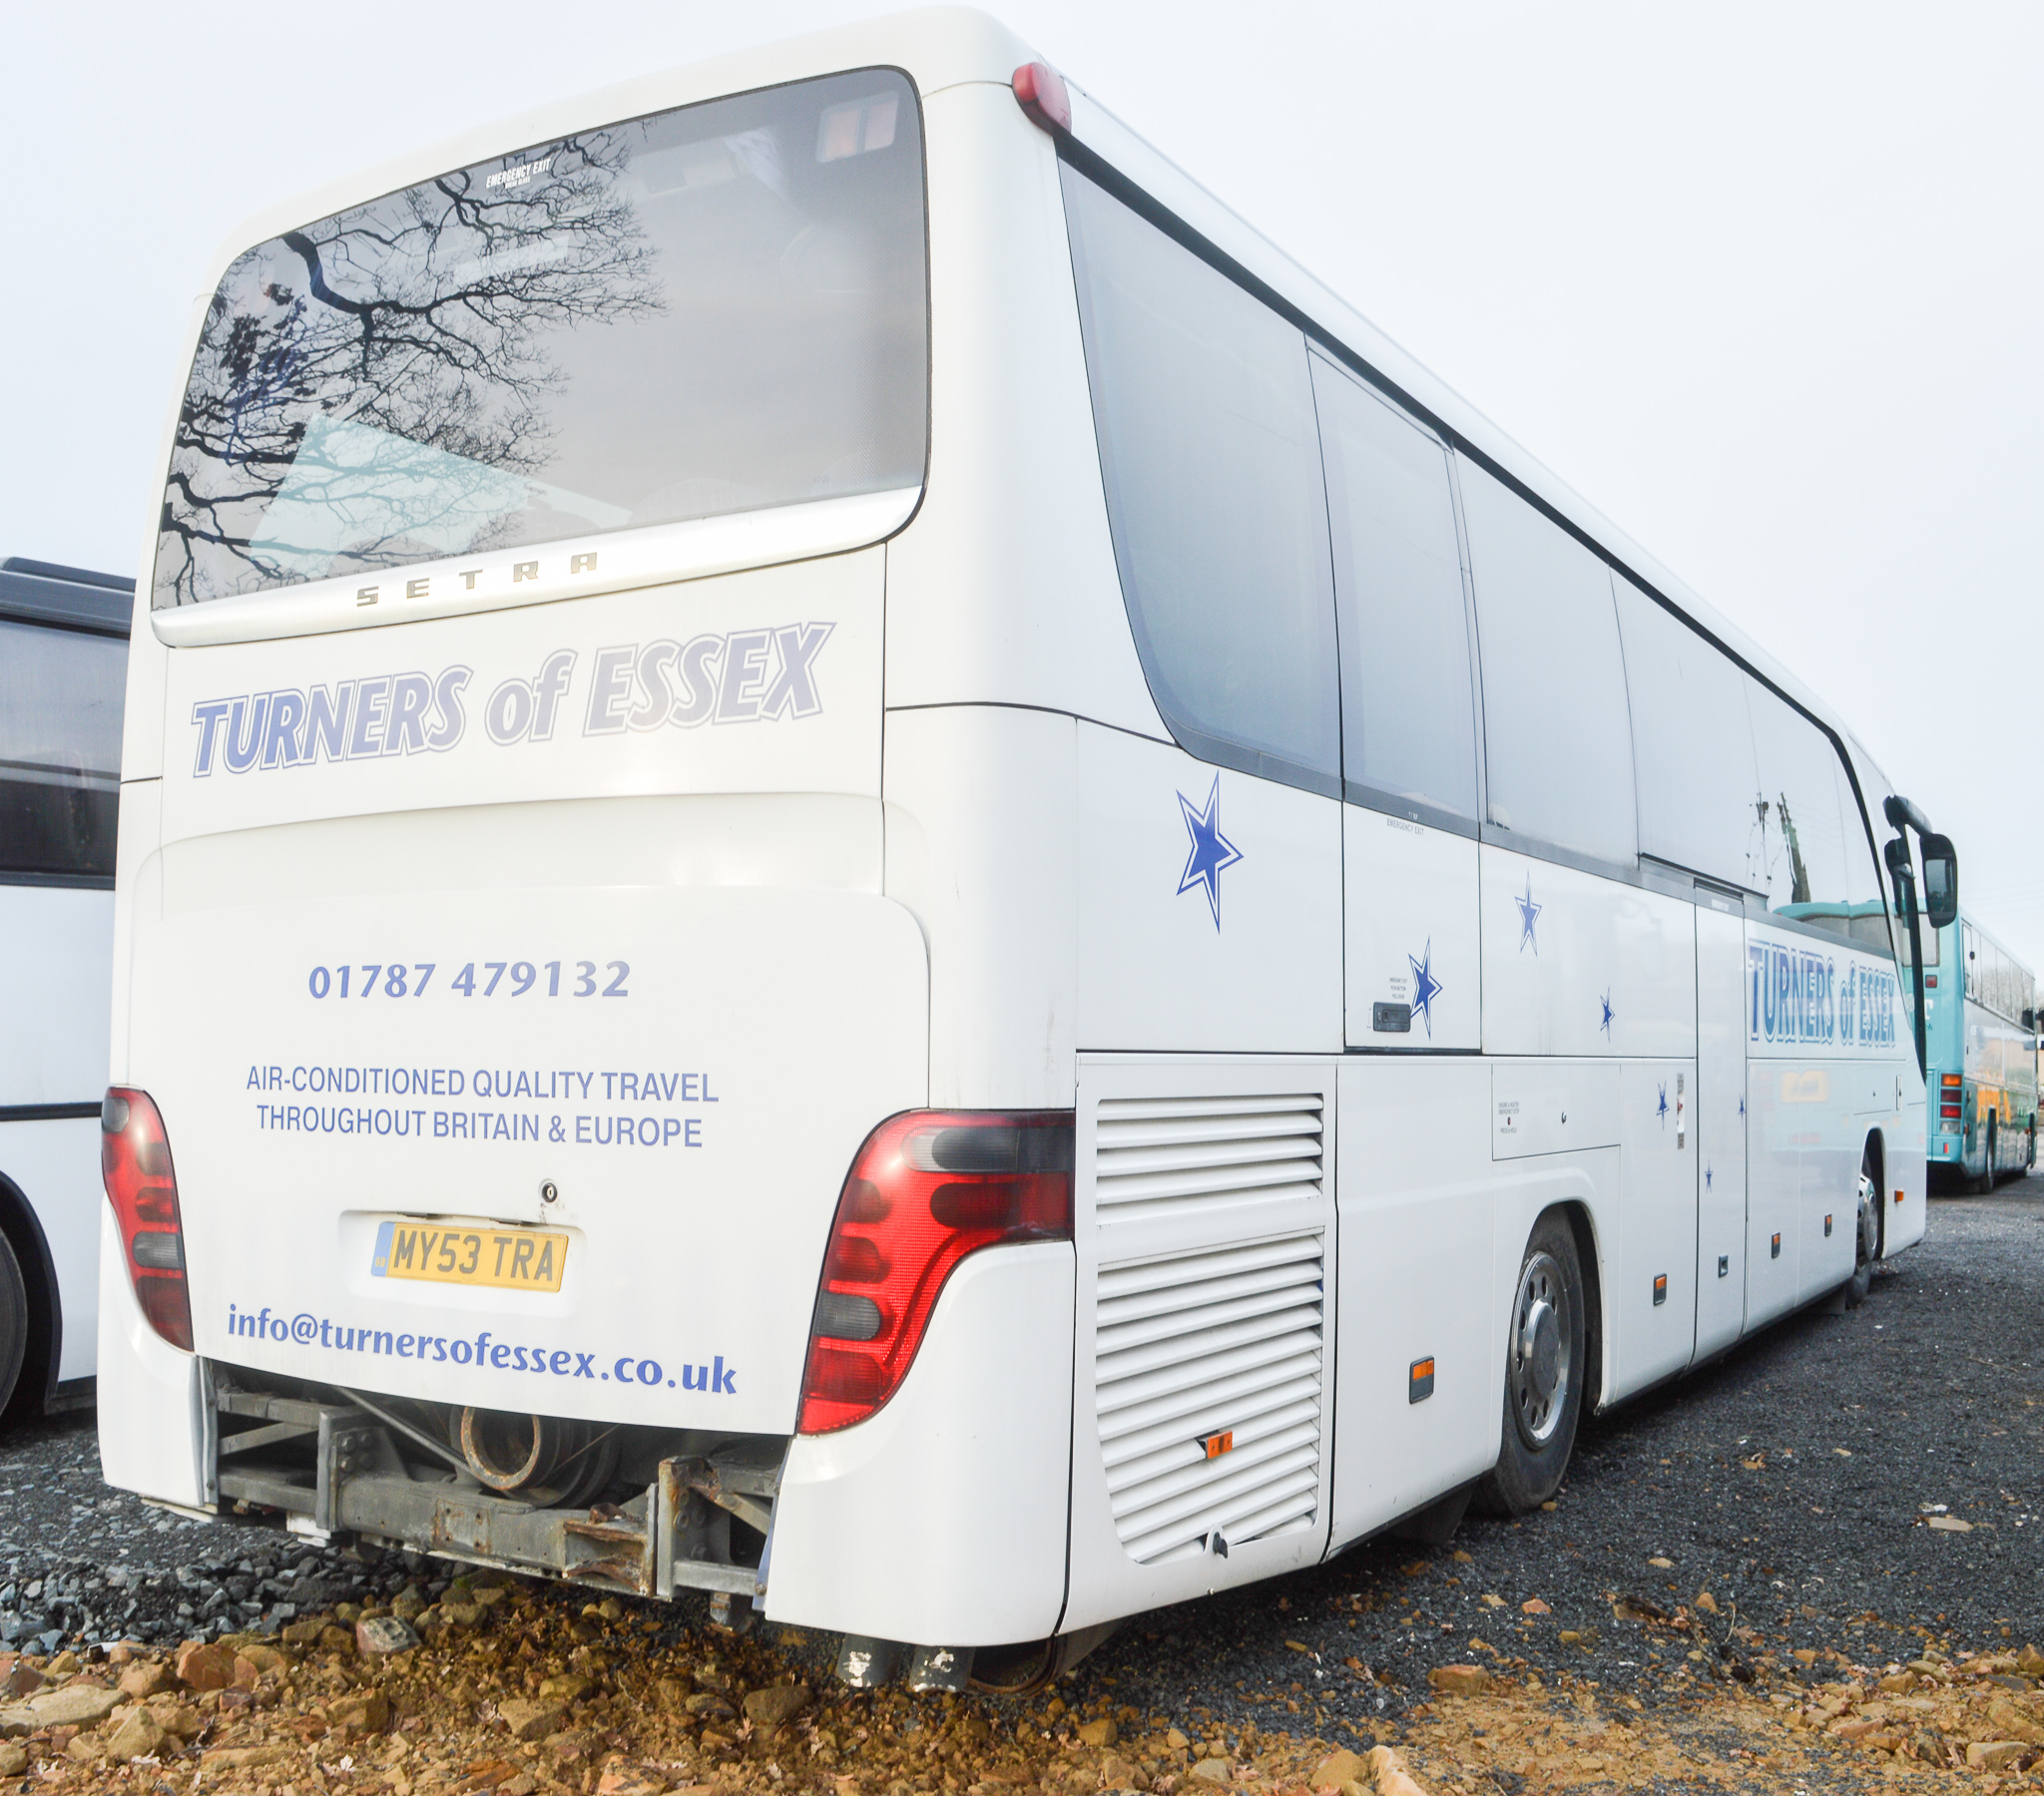 Lot 49 - Mercedes Benz Setra Evobus 49 seat luxury coach Registration Number: MY53 TRA Date of